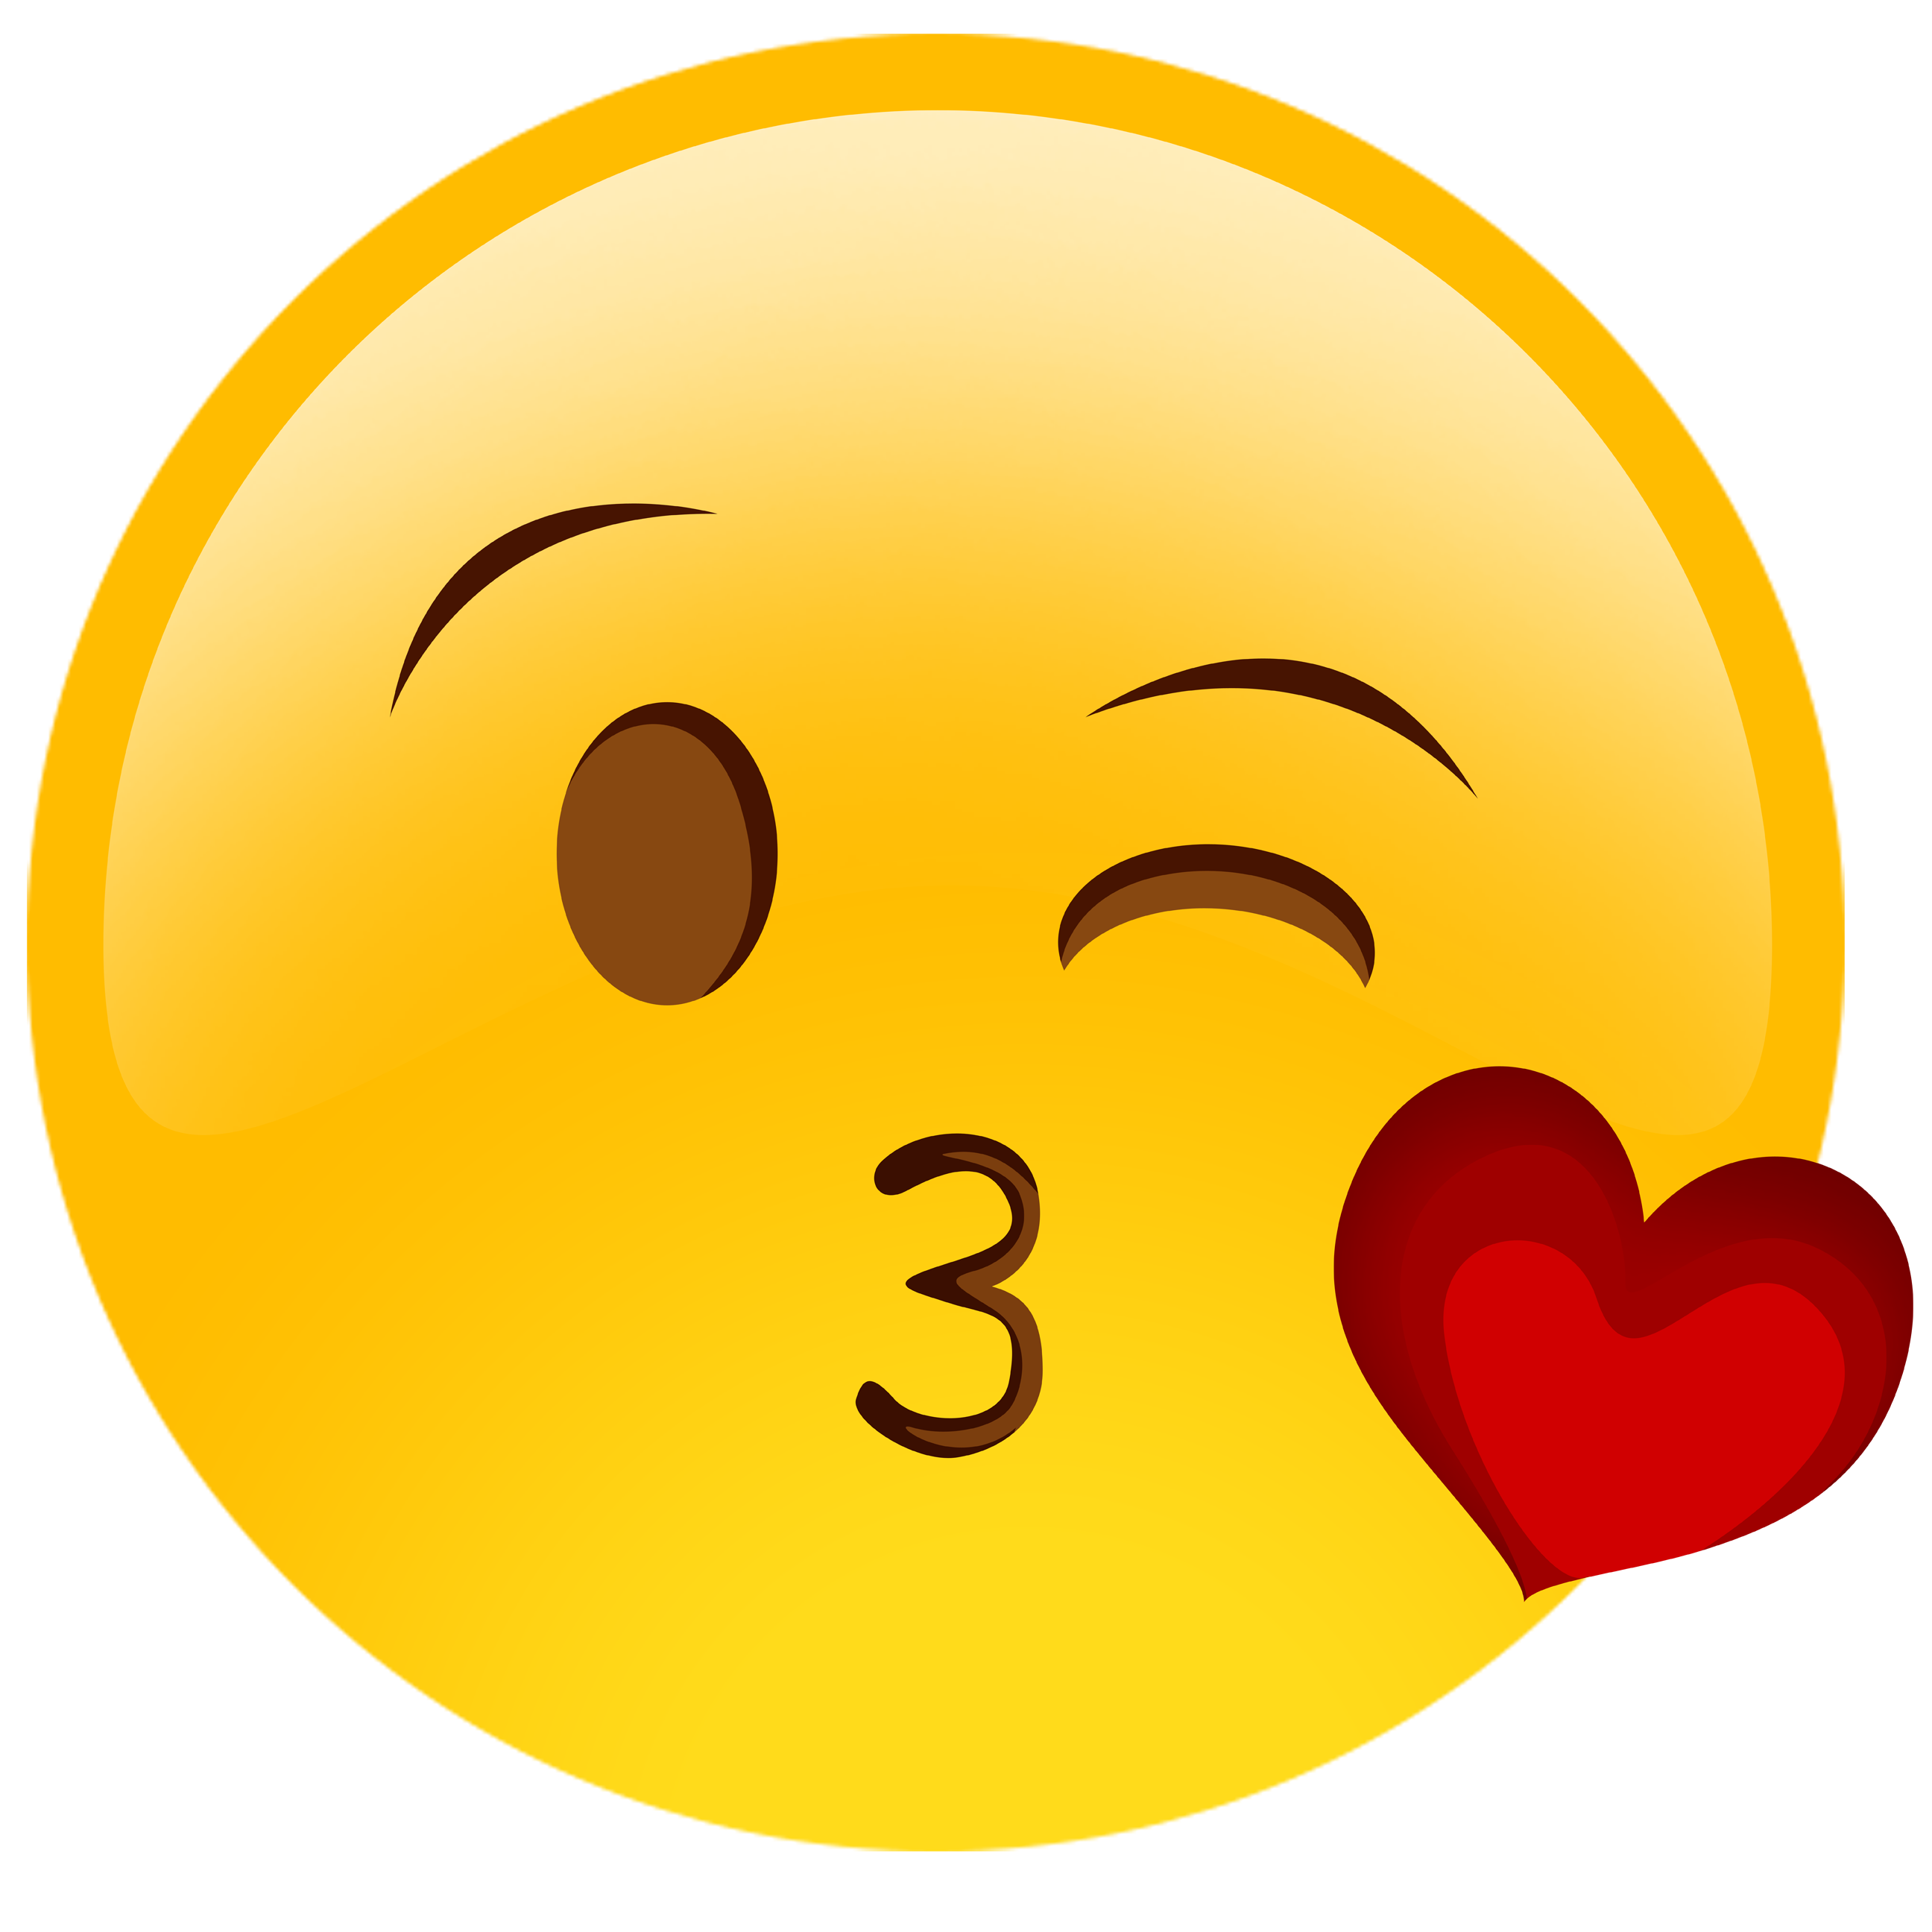 Smiling Emoji Png ,HD PNG . (+) Pictures - vhv.rs - Smiling Smiley-Face